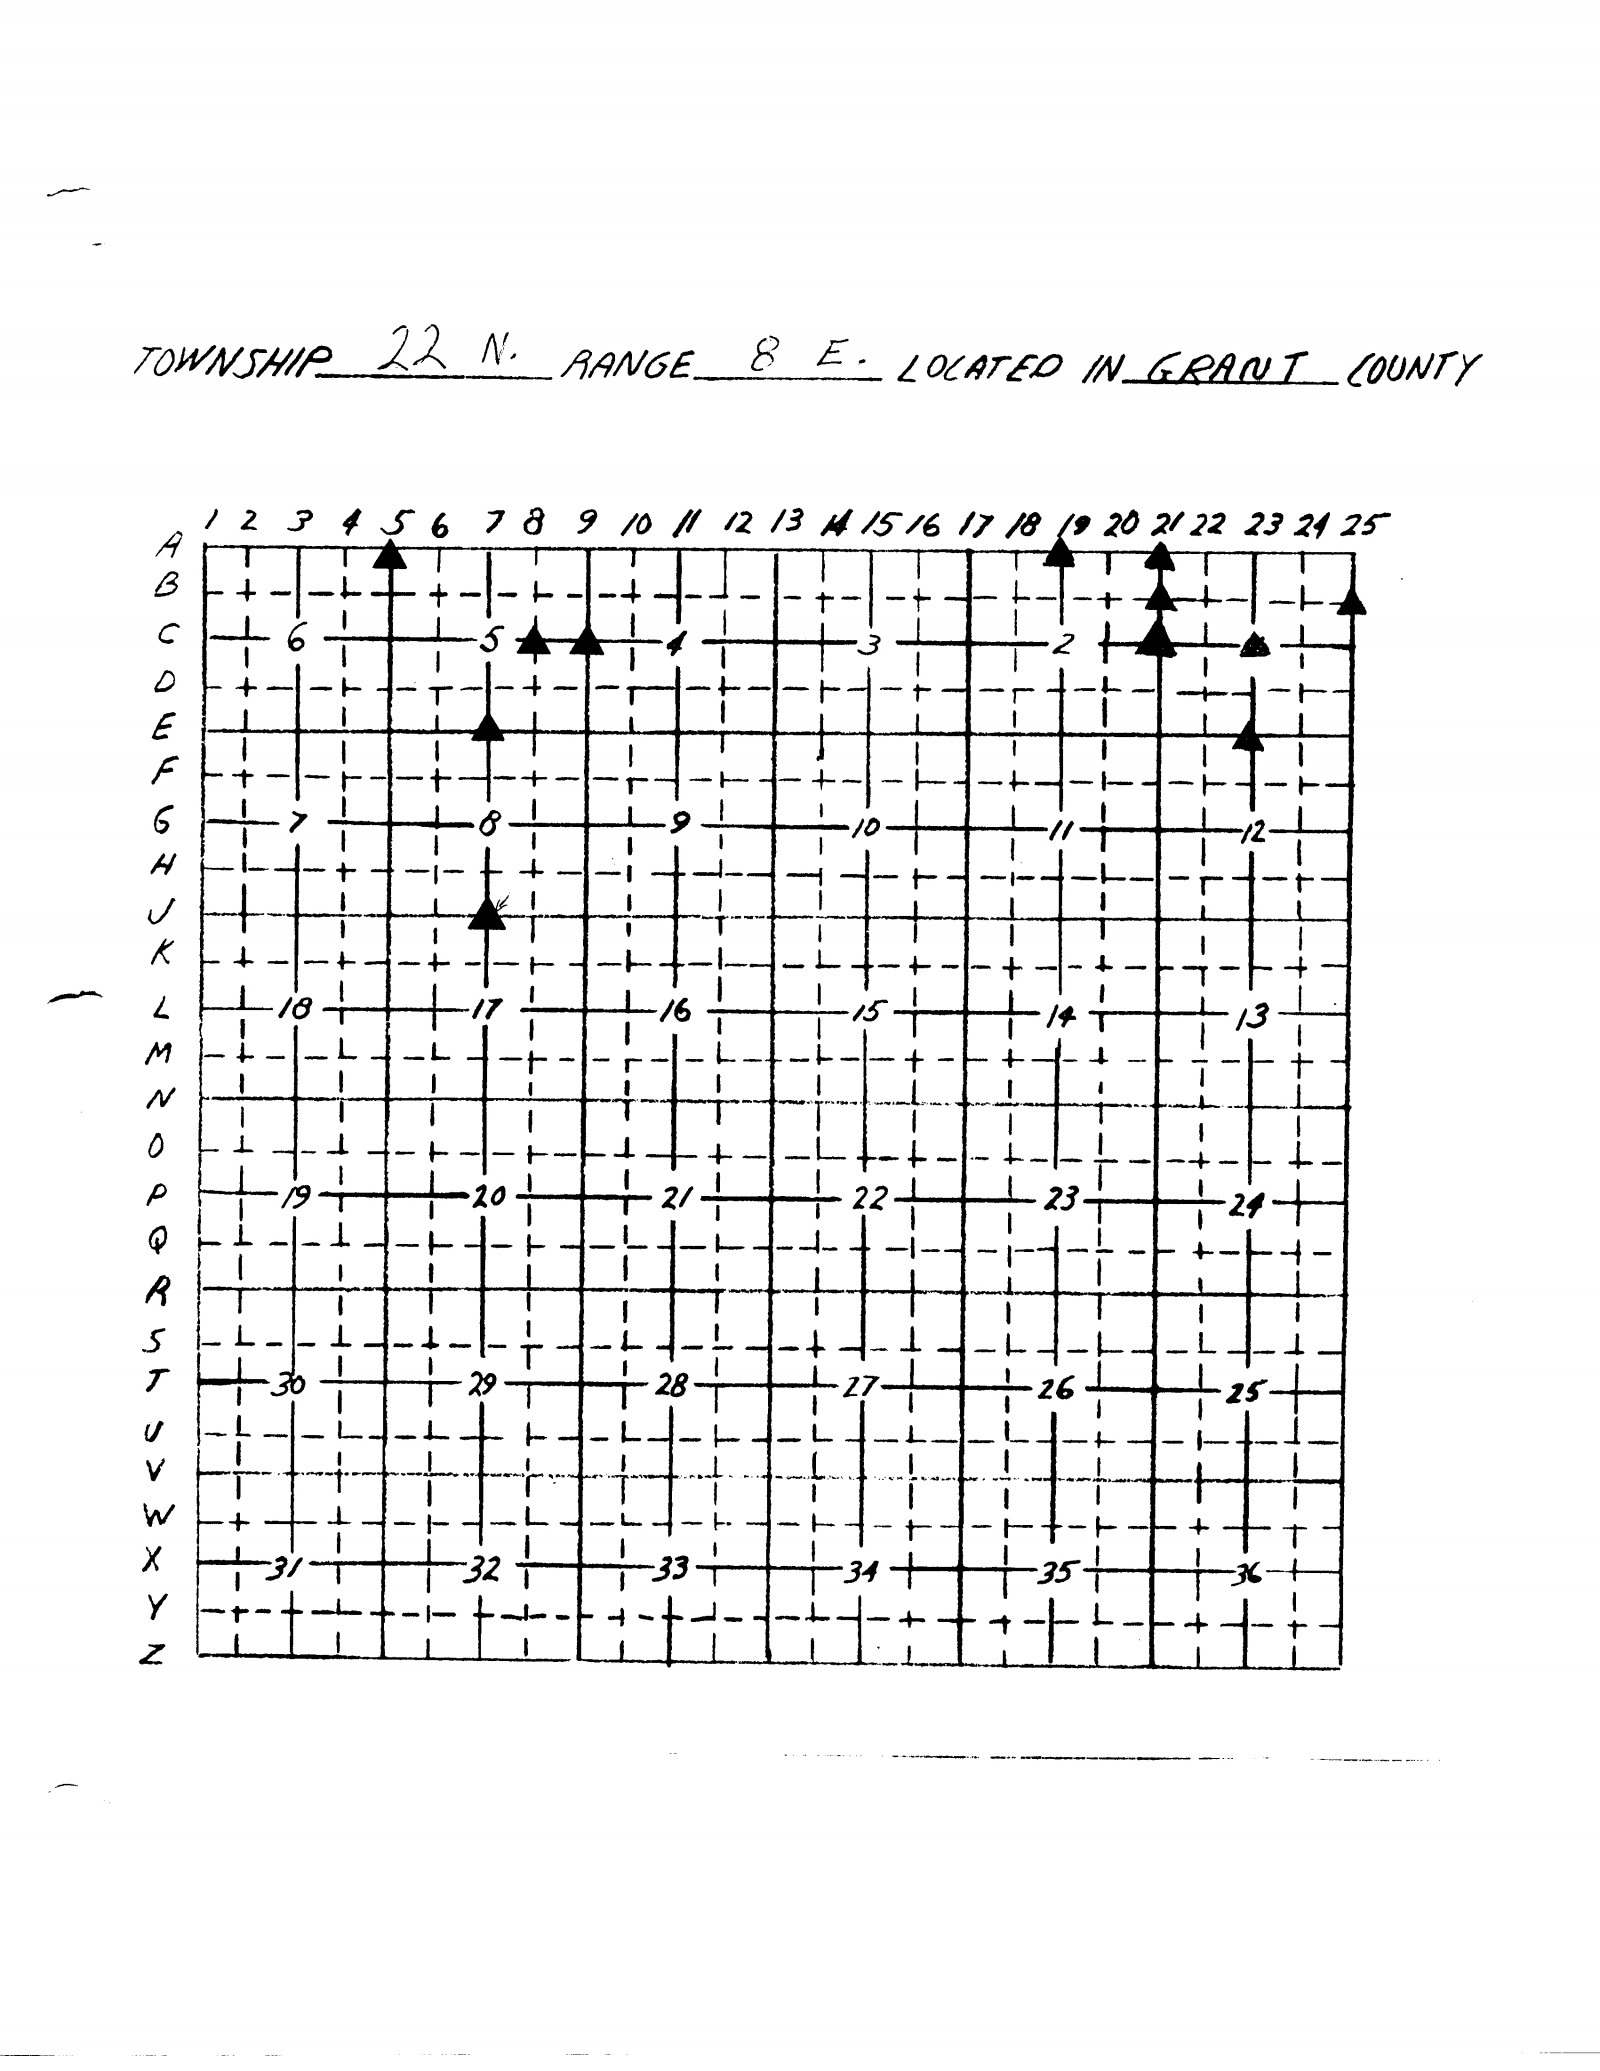 grid for cornerstone markers t22n